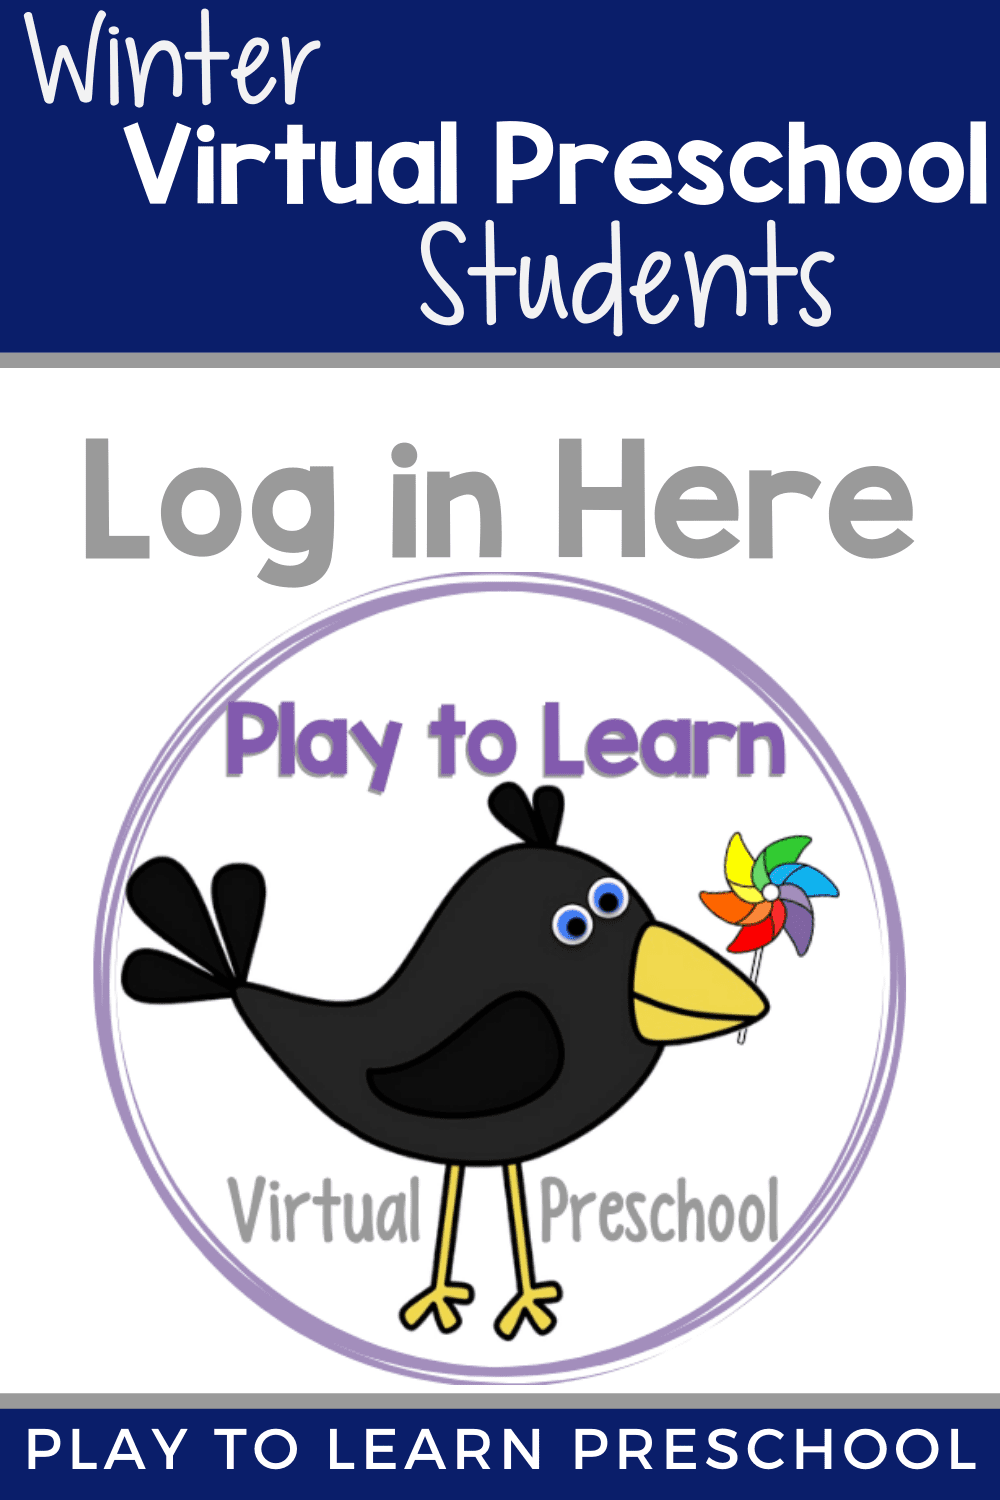 Virtual Preschool Student Log in